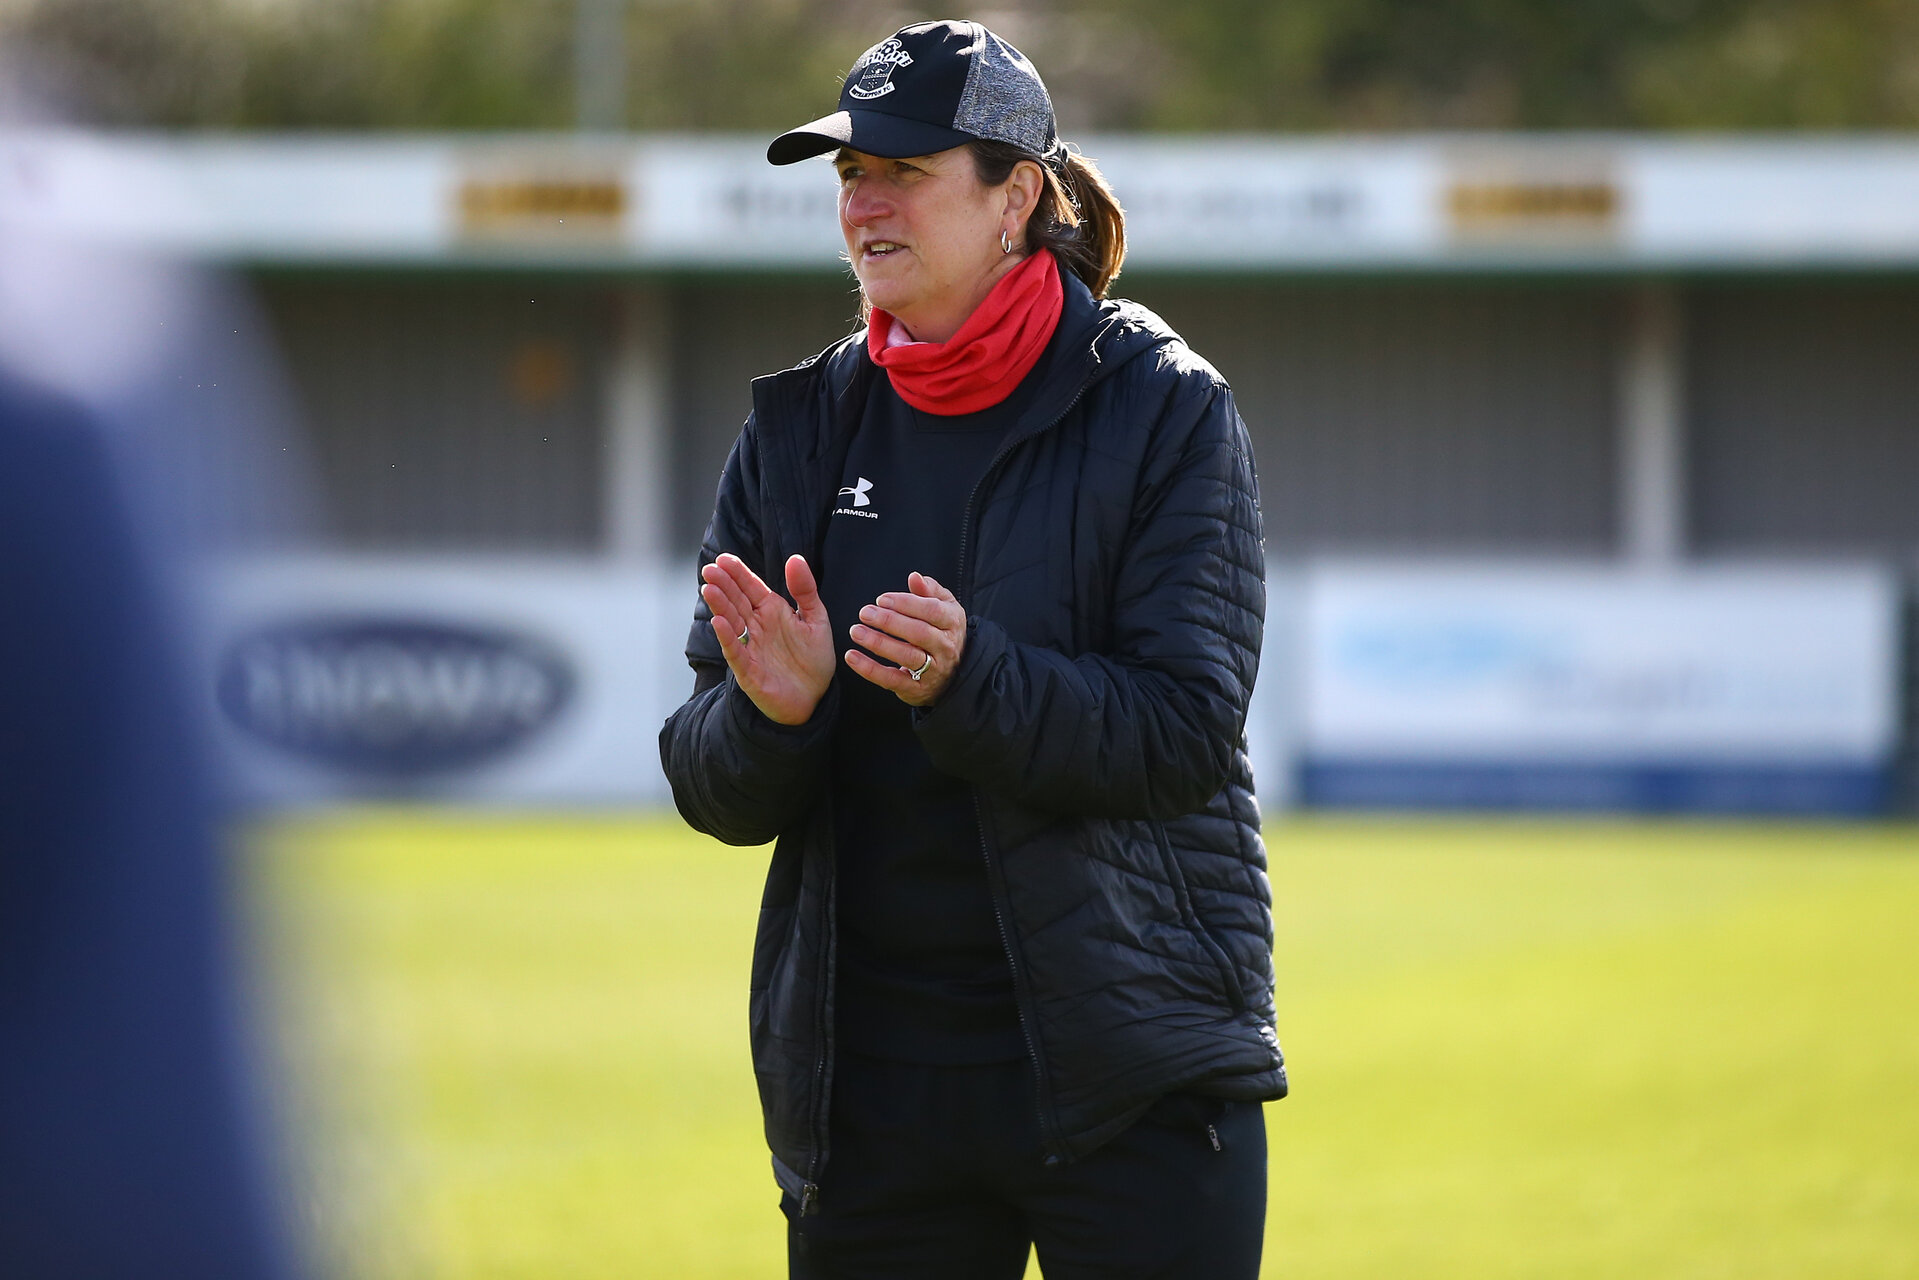 SOUTHAMPTON, ENGLAND - APRIL 11: Marieanne Spacey-Cale Southampton women's head coach during the Vitality Women's FA Cup third round match between Southampton Women and Yeovil United Women at The Snows Stadium on April 11, 2021 in Southampton, England. (Photo by Isabelle Field/Southampton FC via Getty Images)